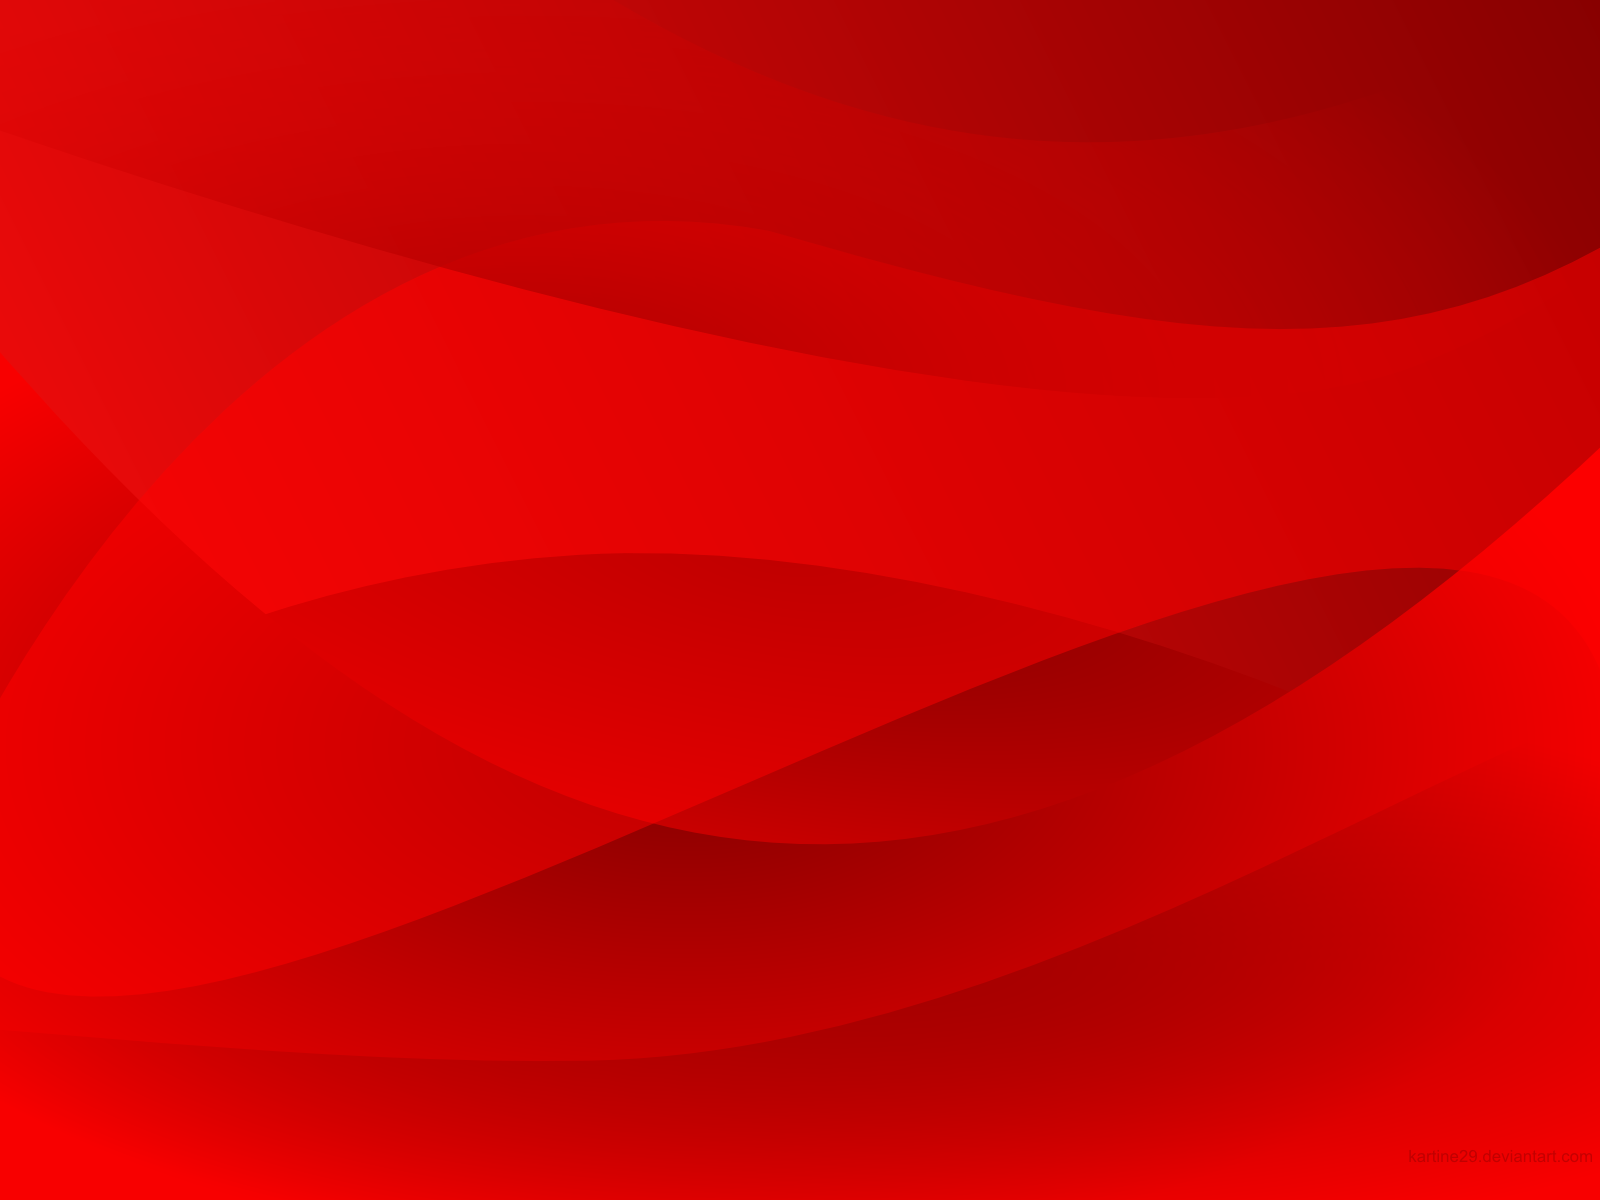 Red Wallpapers 100% Quality HD 1600x1200